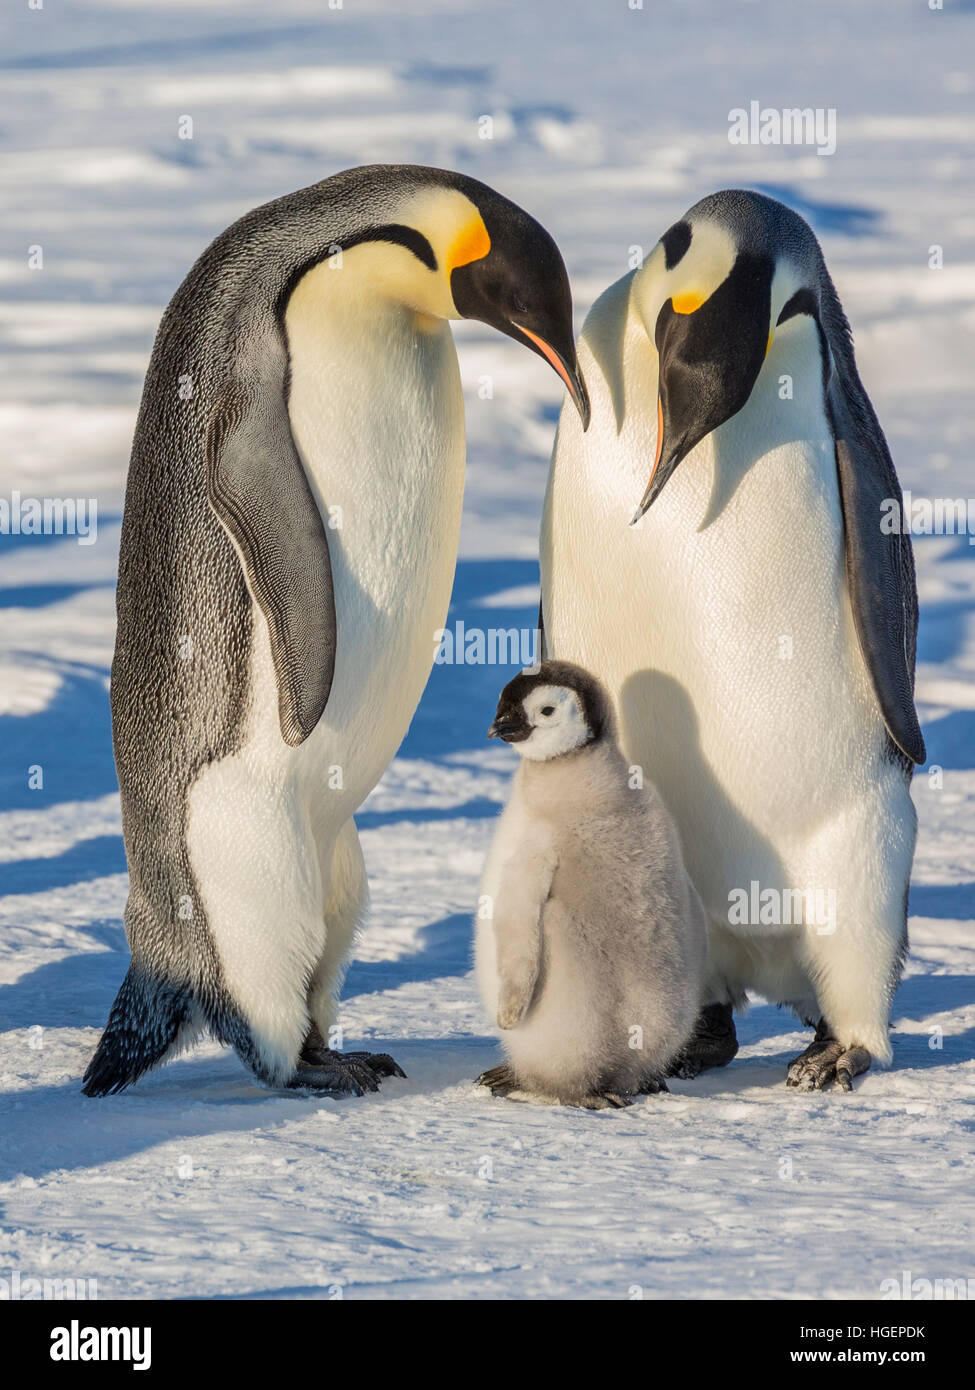 An Emperor Penguin chick stands with two adults - Stock Image